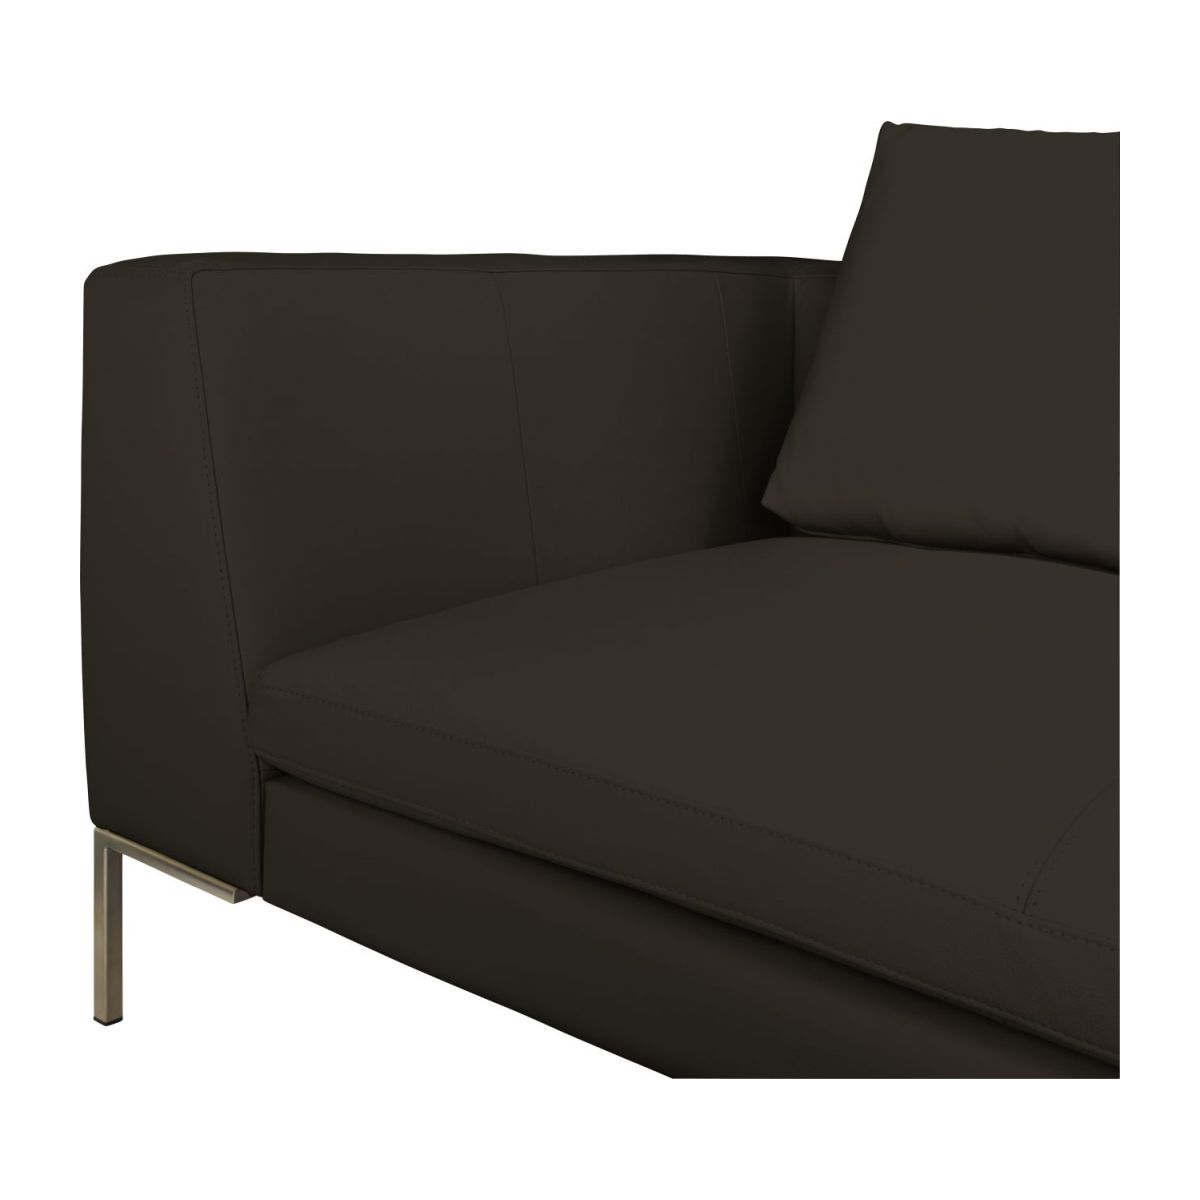 montino 3 sitzer sofa aus eton leder braun habitat. Black Bedroom Furniture Sets. Home Design Ideas